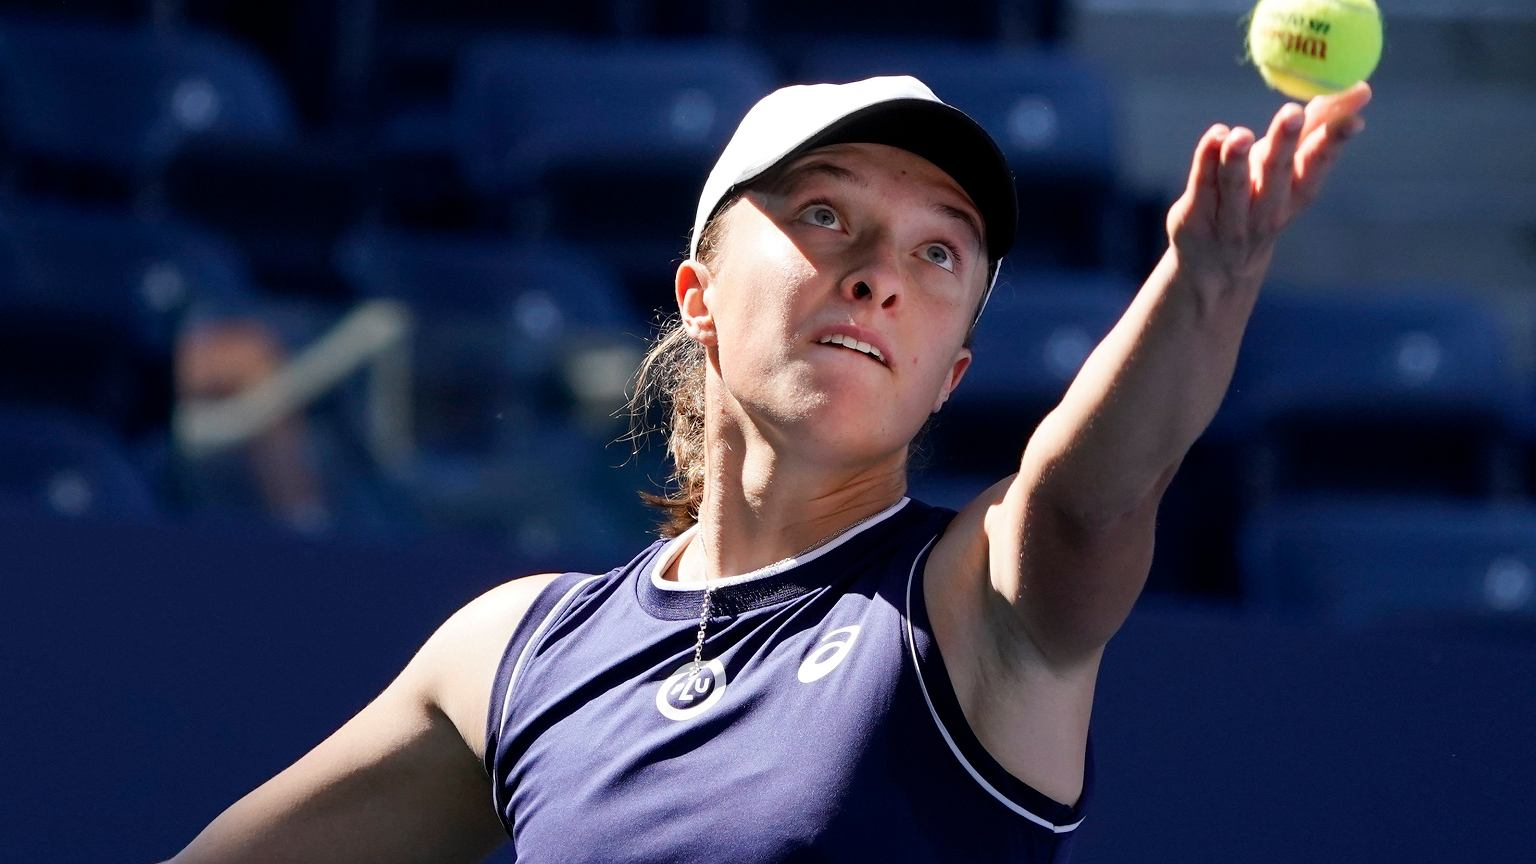 She won the US Open ... and fired the coach.  Emma Radukanu said the reason for the surprising result